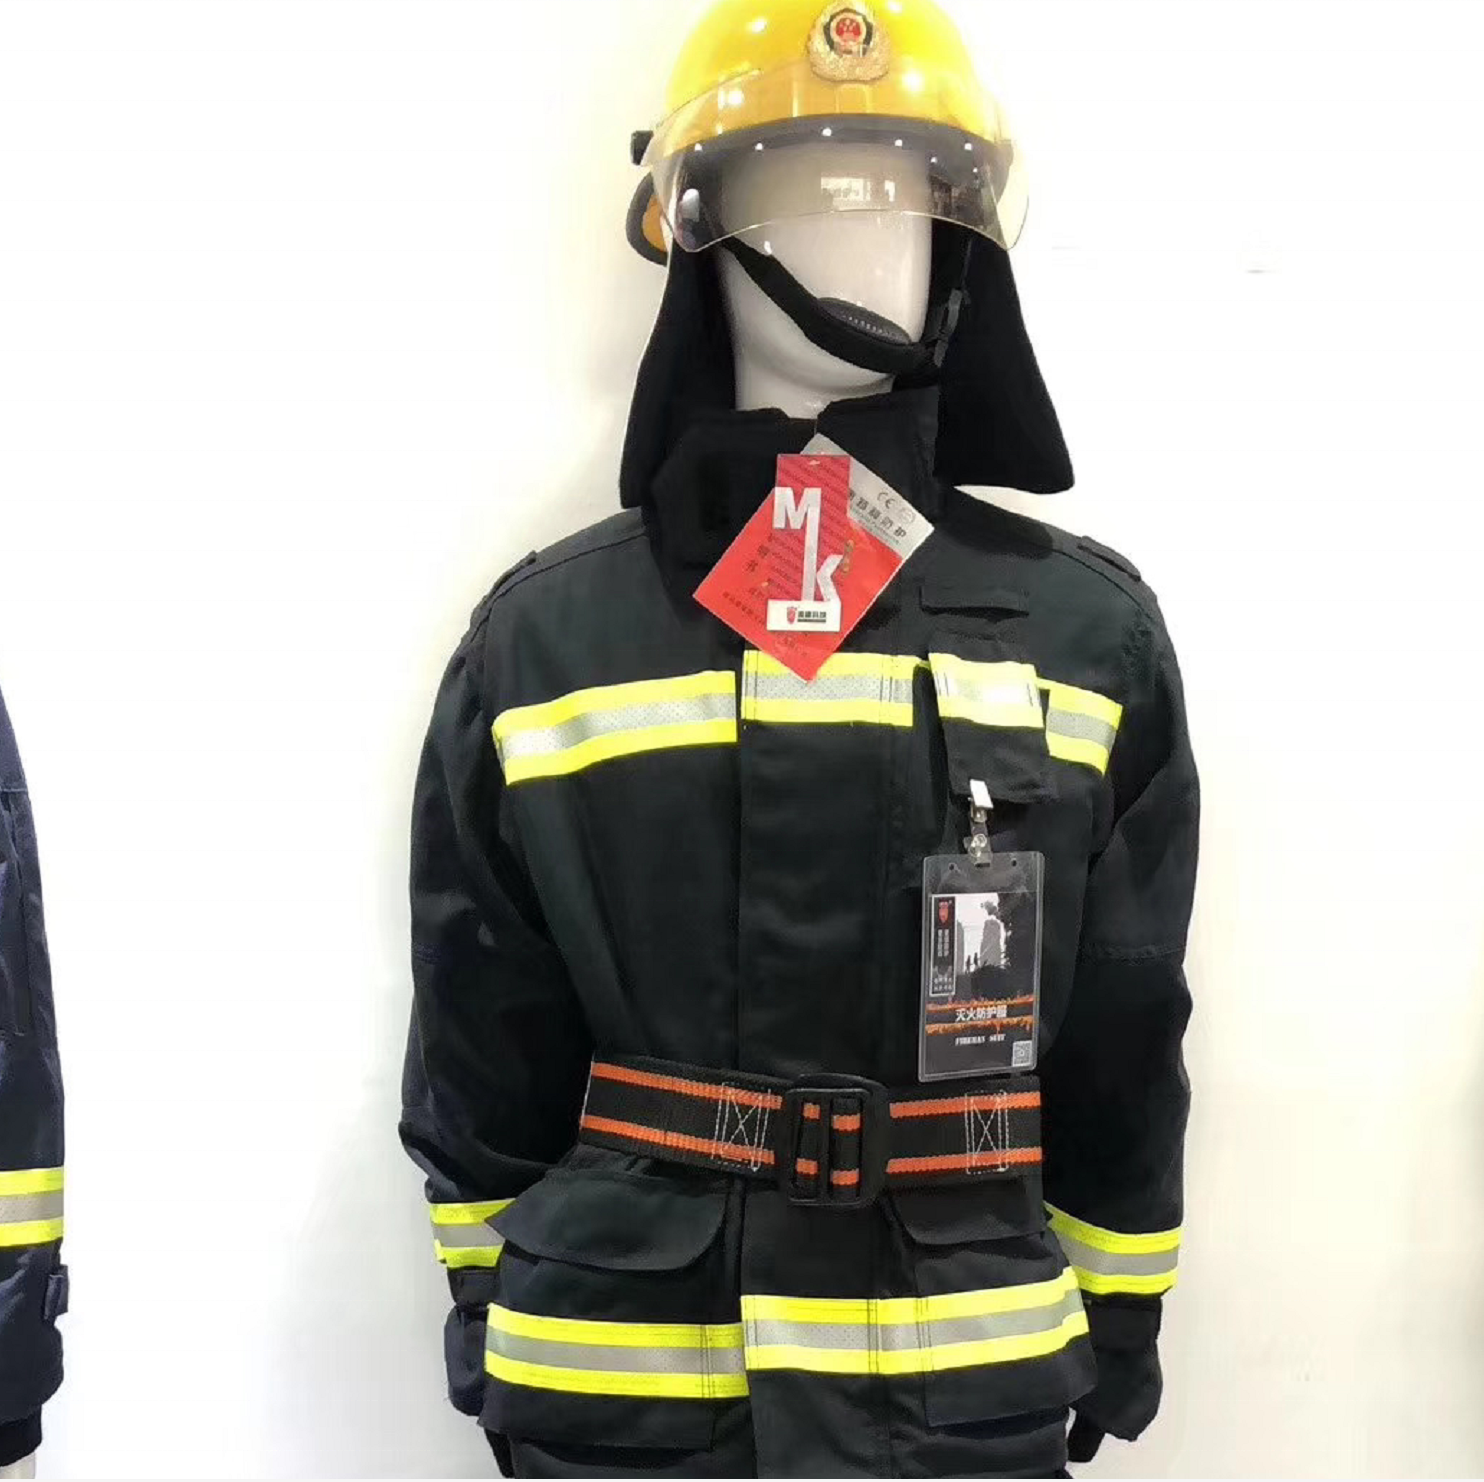 EN469 fireman protection fire fighting suit Jacket and pants